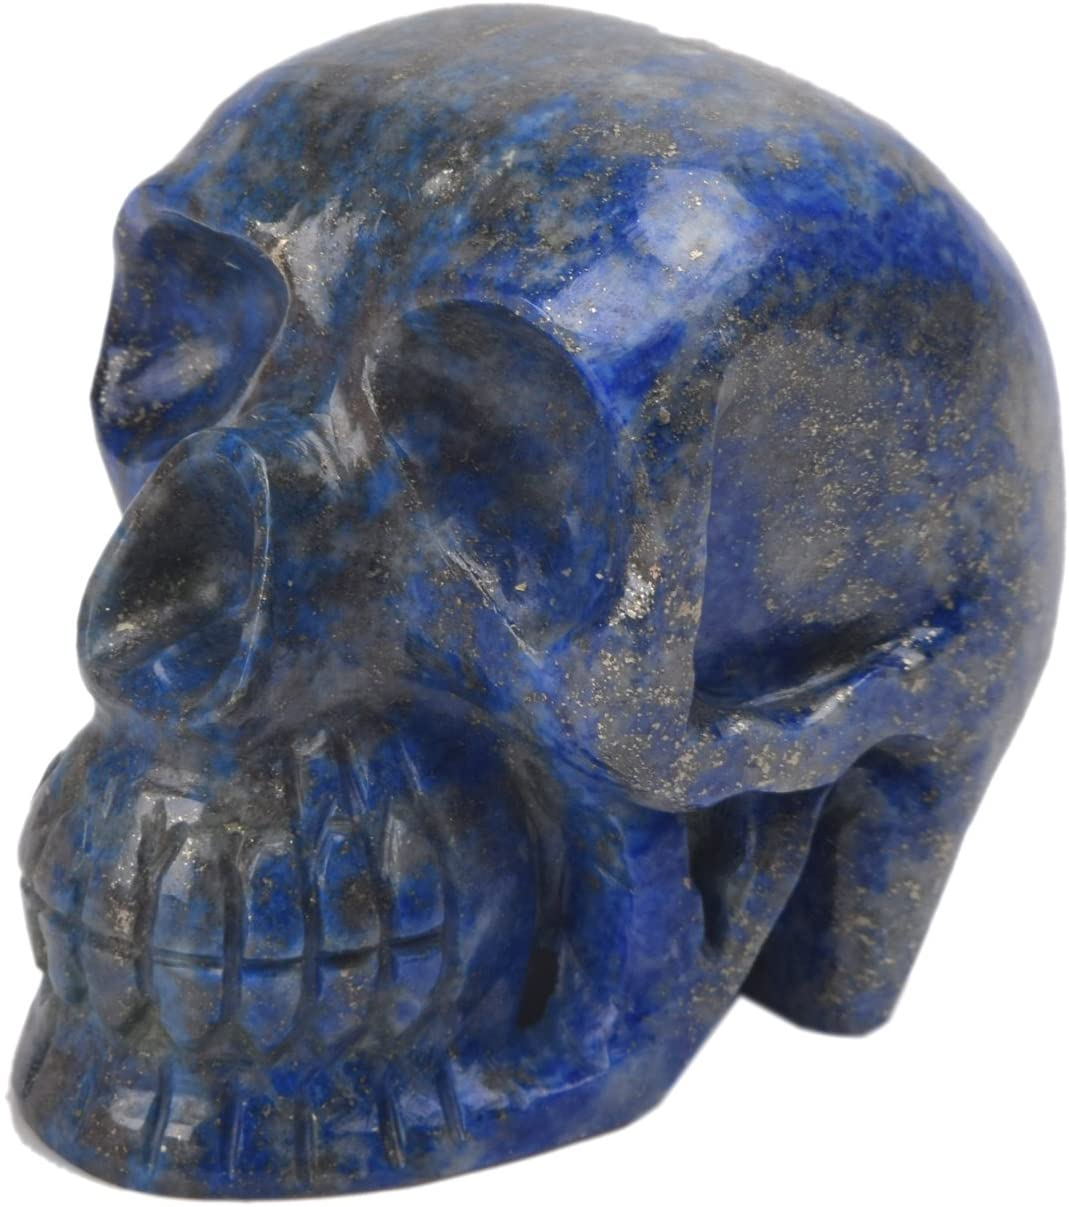 Approximately 1621.50 Ct./76 mm Handmade Human Head Skull Figurine Lapis Crystal Statue Halloween Decor DM-376